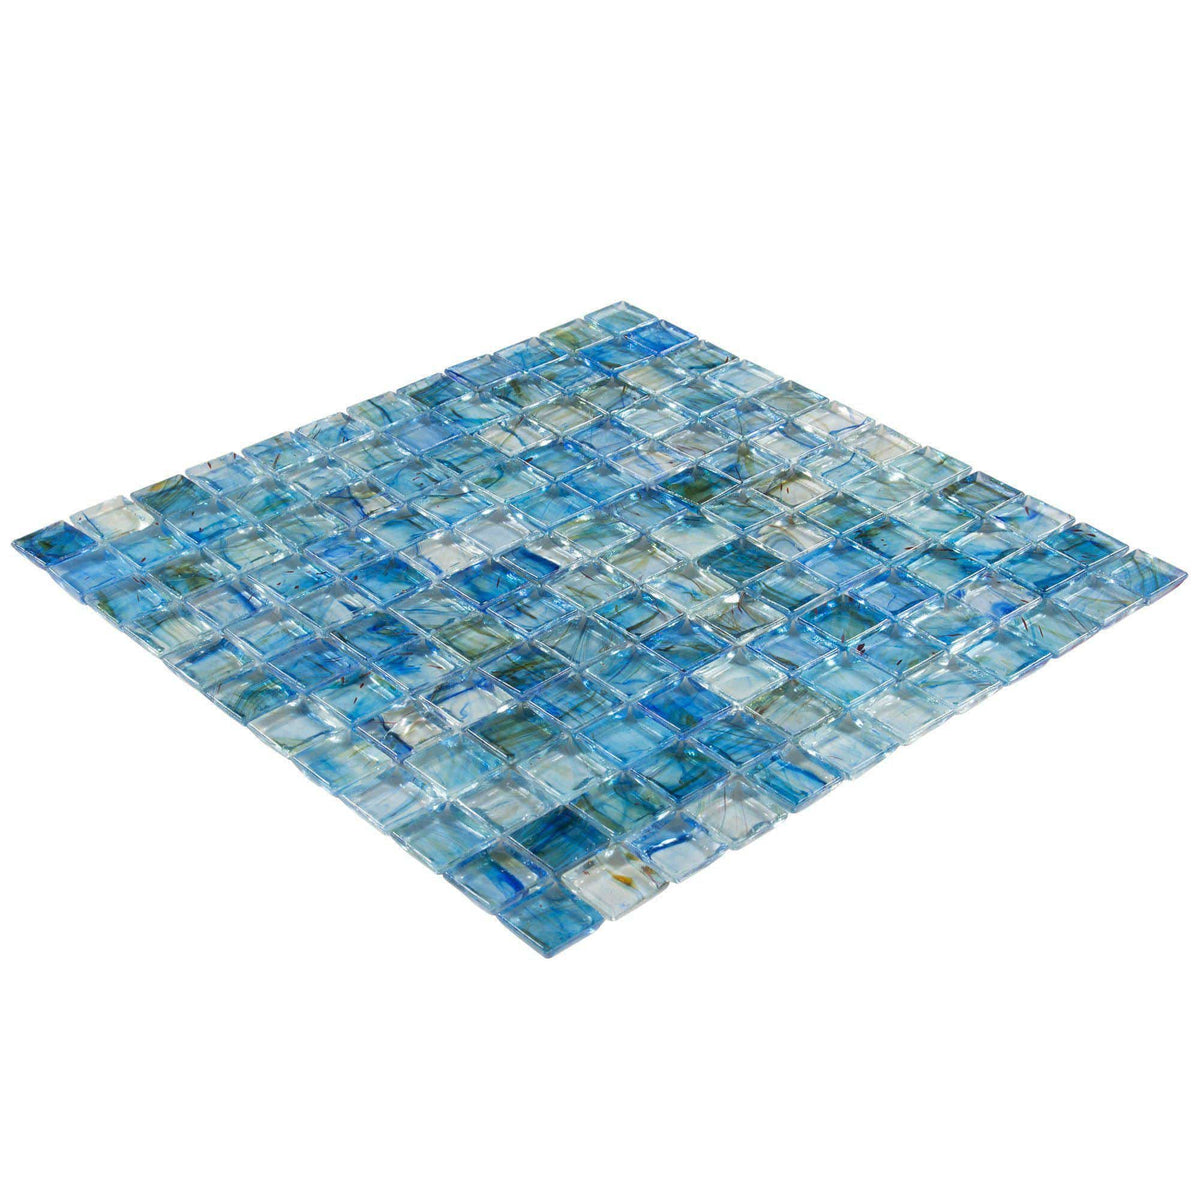 Mto0083 1x1 Stacked Squares Blue Green Gray Glossy Glass